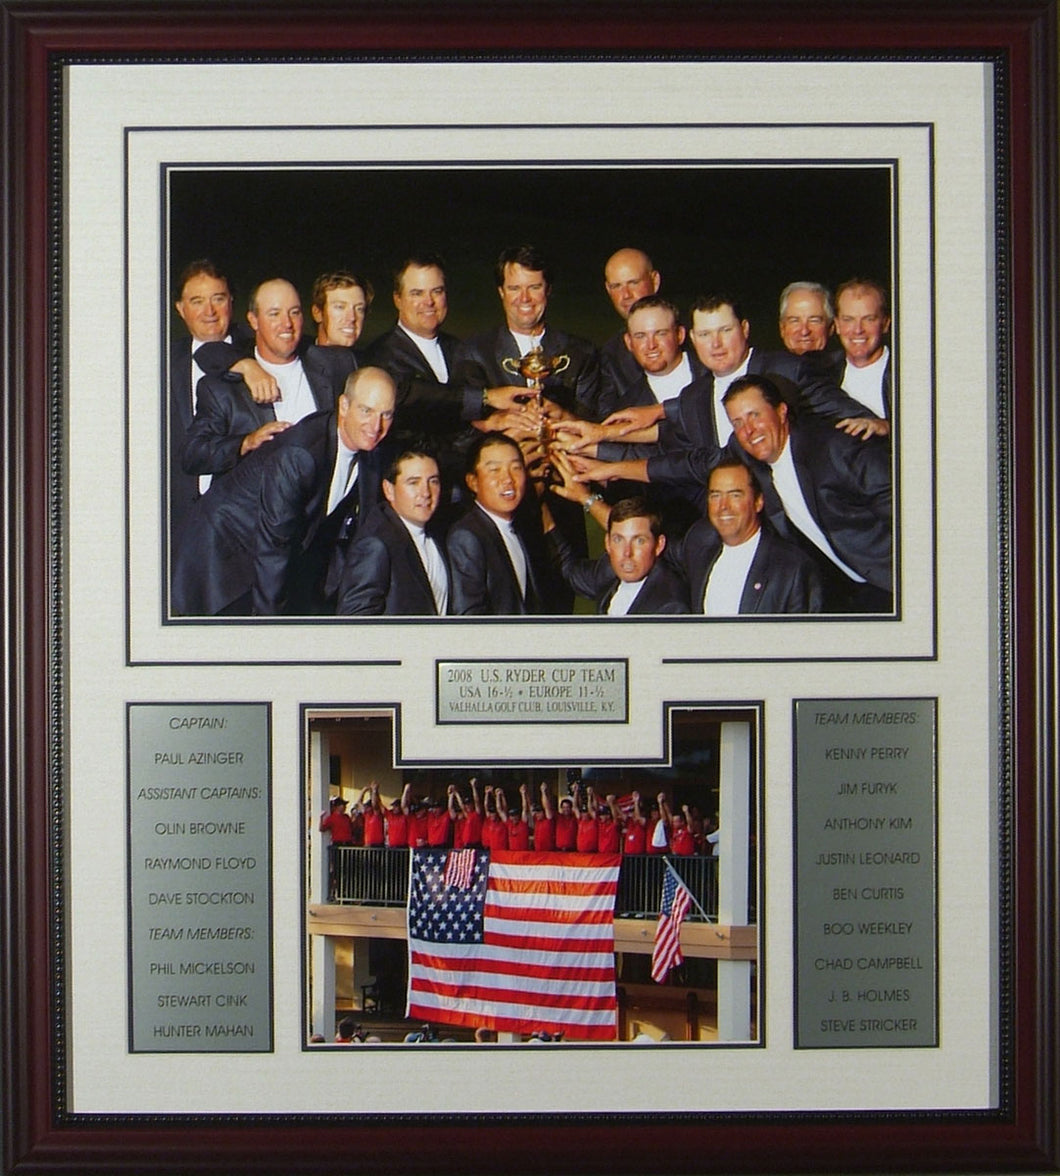 2008 US Ryder Cup Team